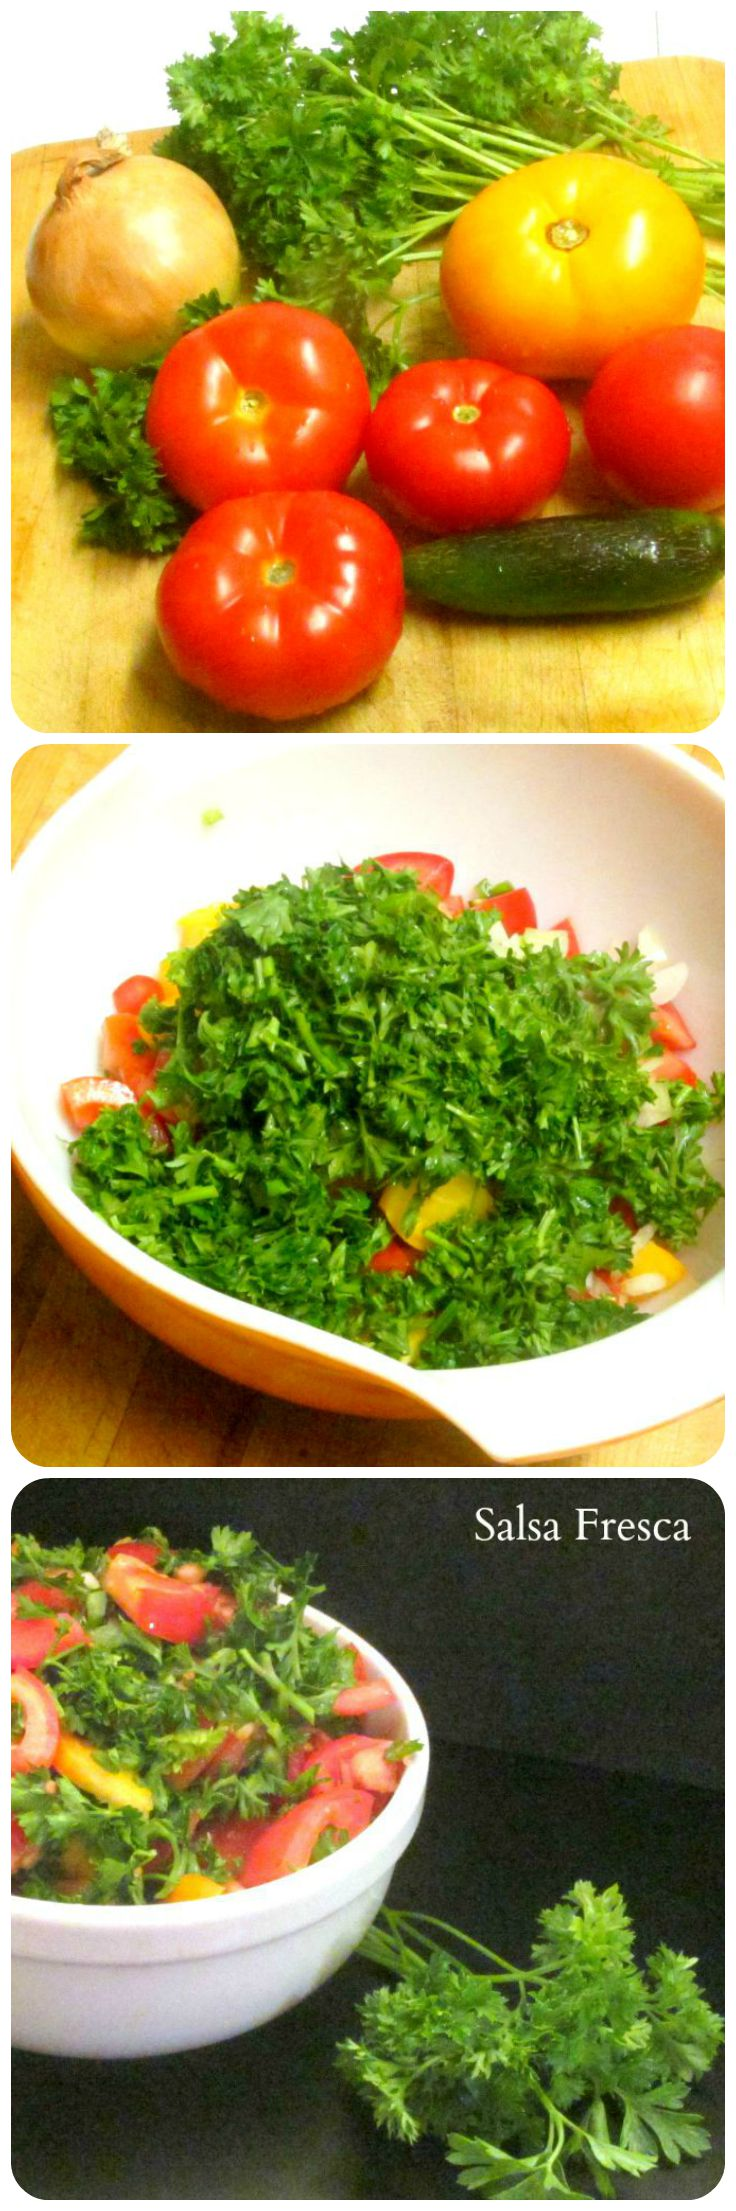 Salsa Fresca (without cilantro) A simple sauce that comes together quickly from raw vegetables to add interest to the plainest meal. www.inhabitedkitchen.com